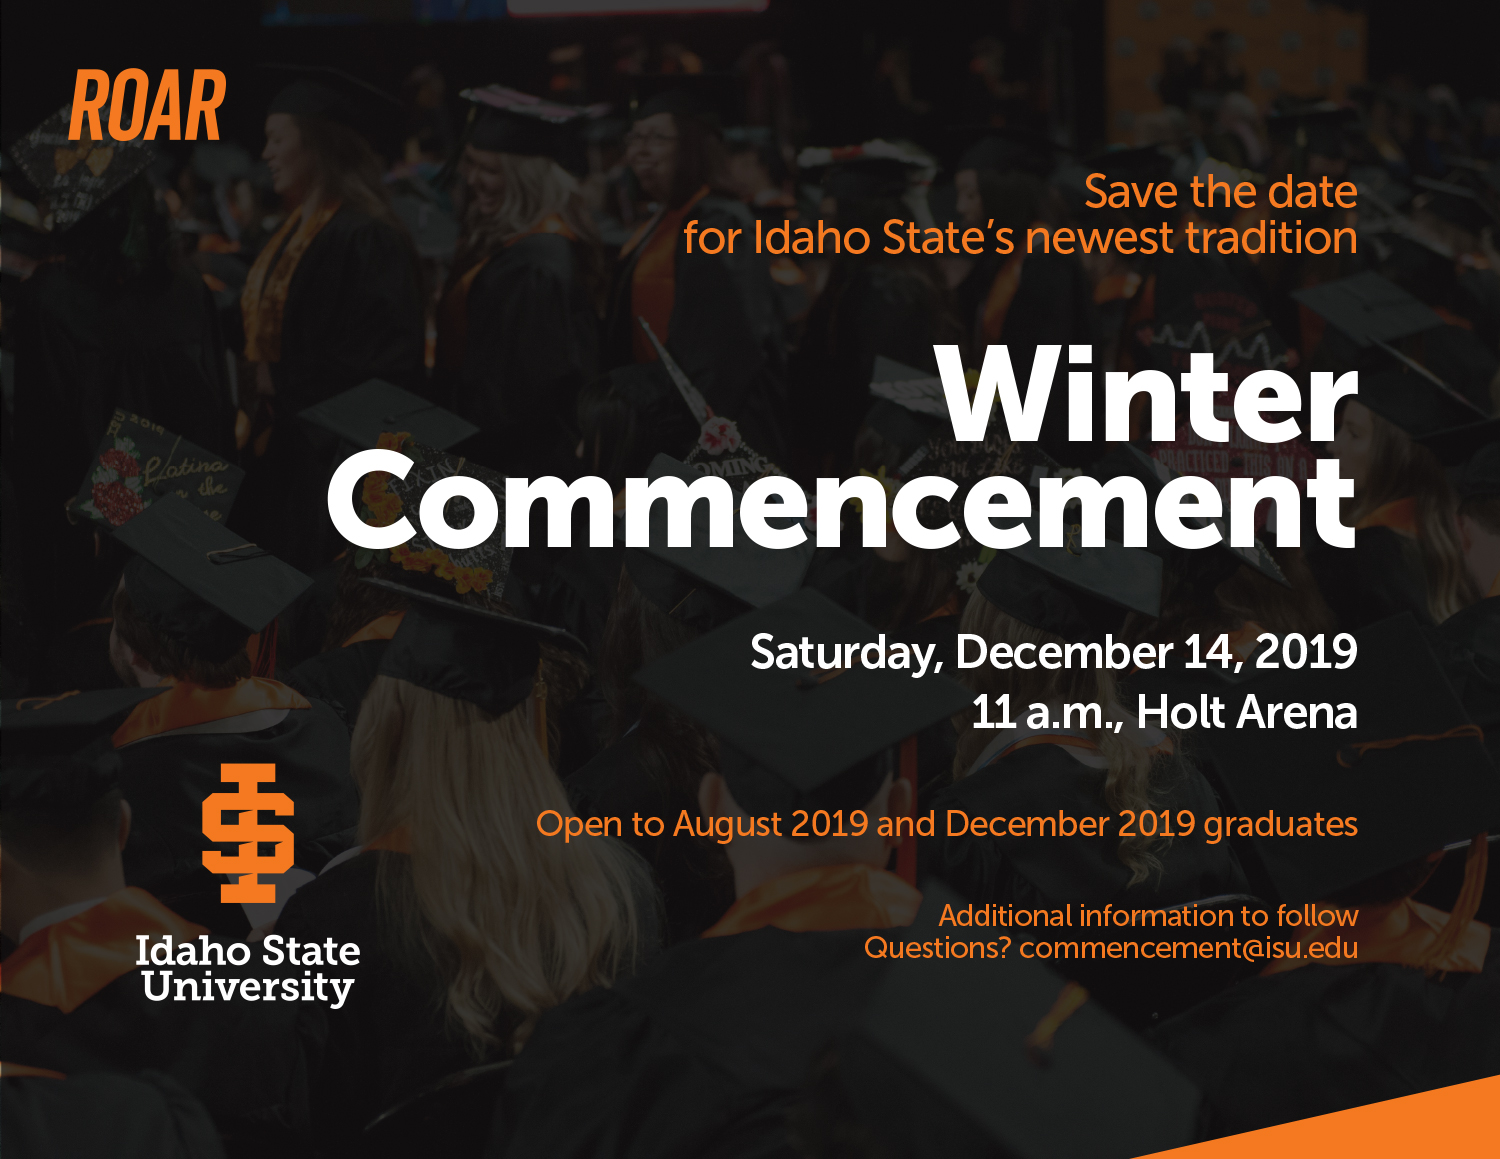 Save the Date for Winter Commencement